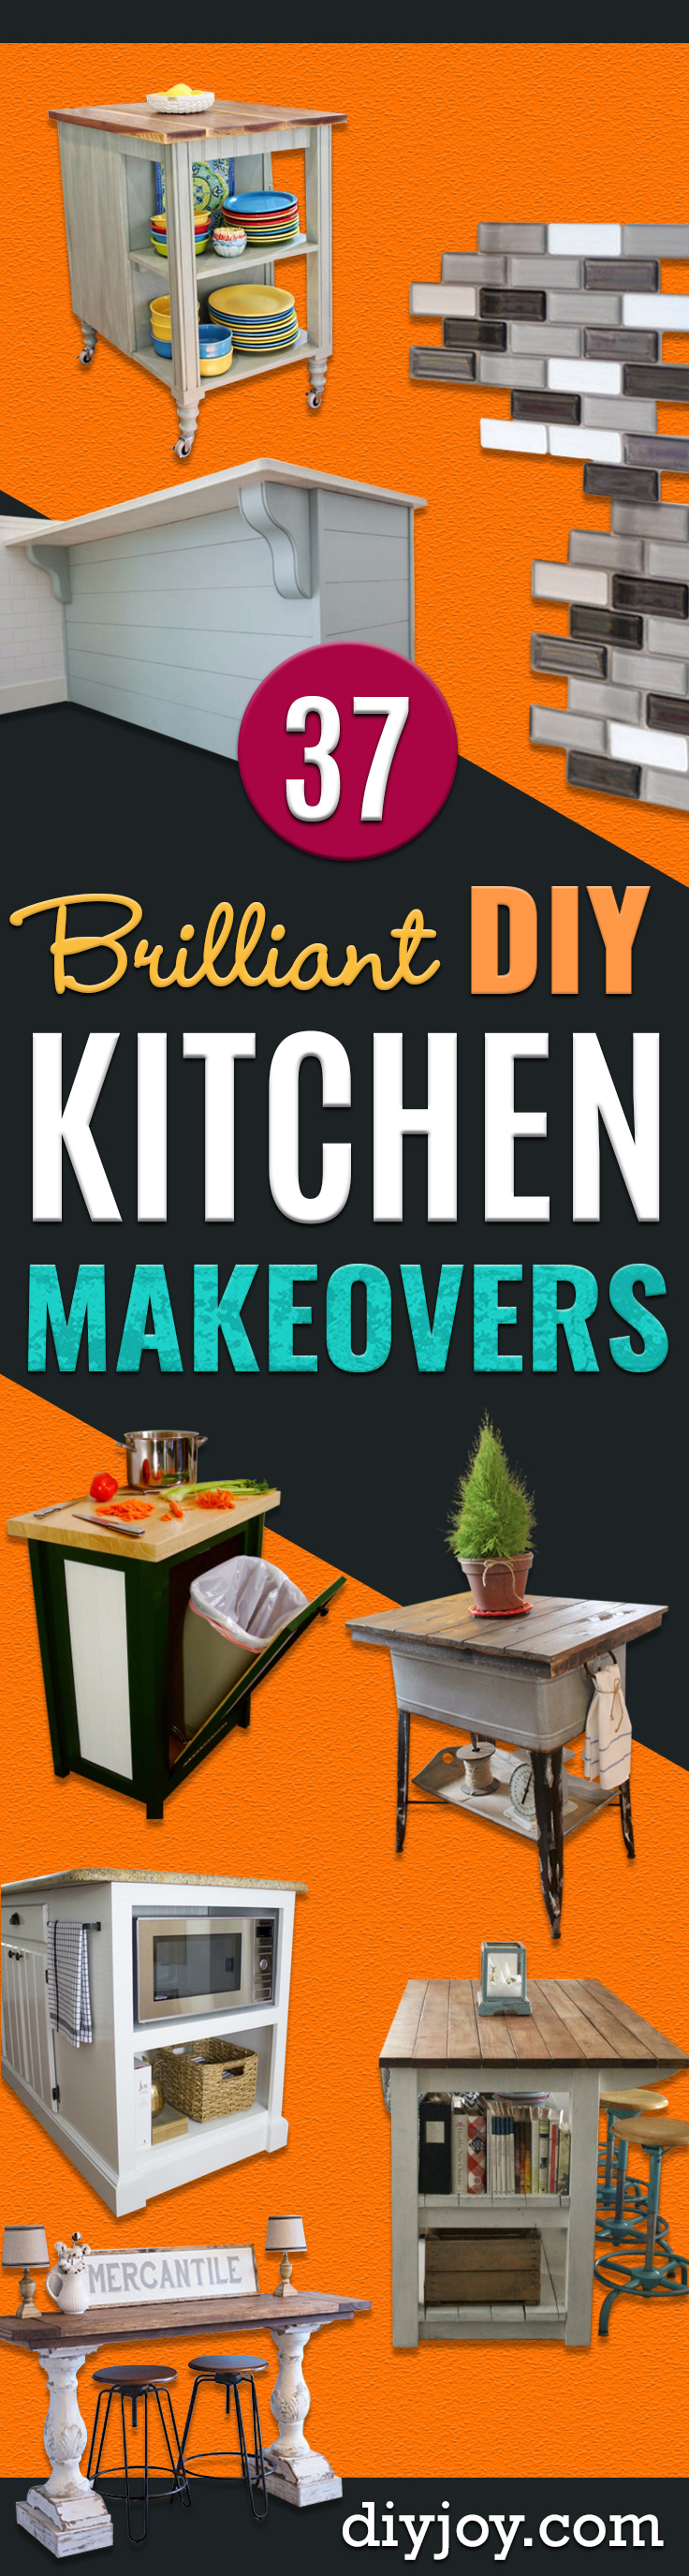 DIY Kitchen Makeover Ideas - Cheap Projects Projects You Can Make On A Budget - Cabinets, Counter Tops, Paint Tutorials, Islands and Faux Granite. Tutorials and Step by Step Instructions http://diyjoy.com/diy-kitchen-makeovers